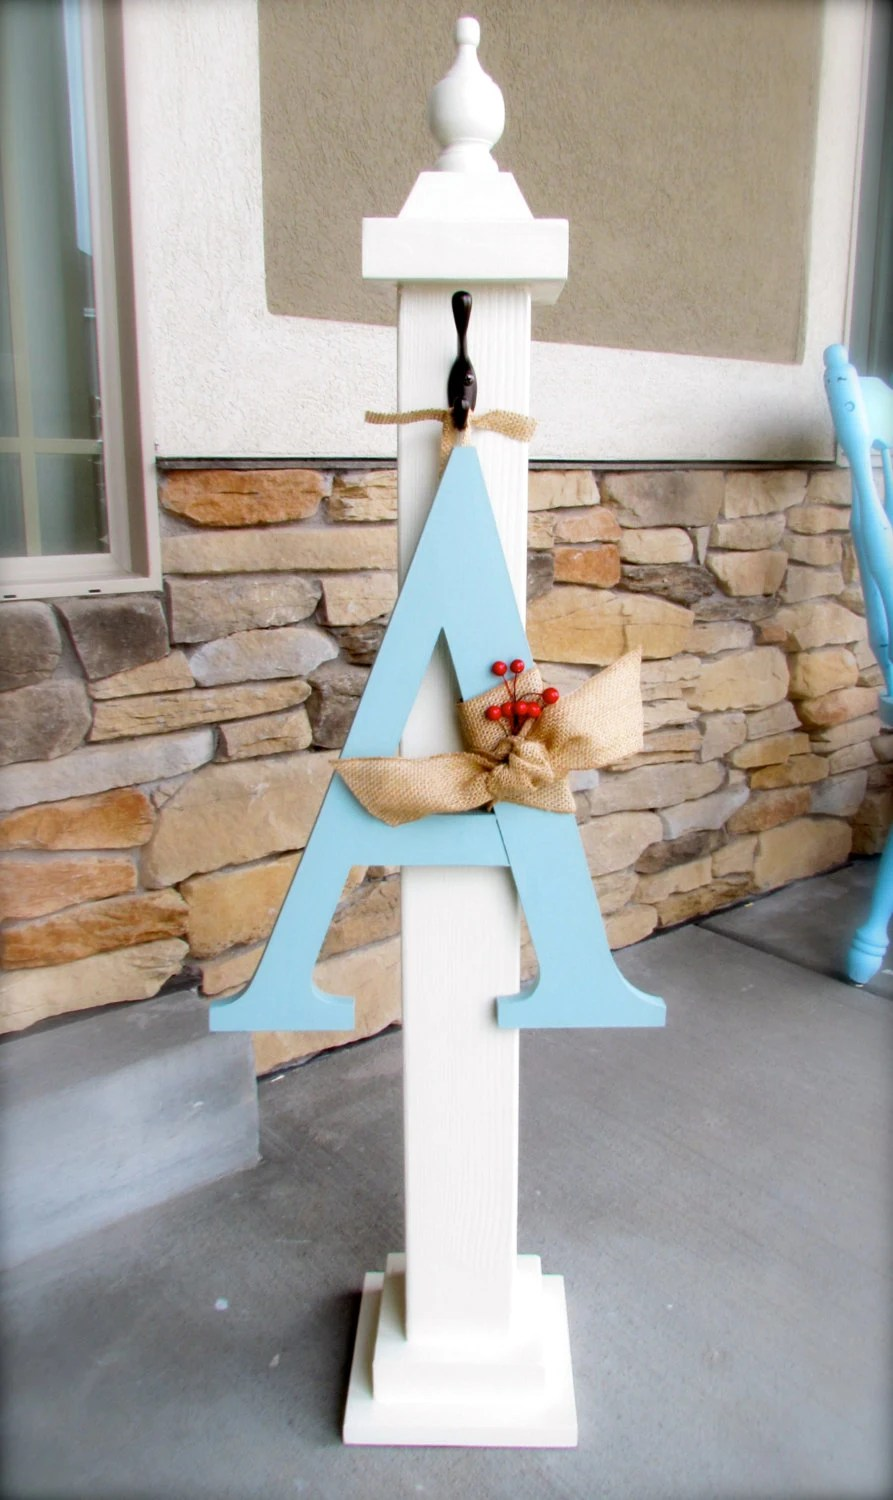 Best Decorative Wood Porch Post By Theglitteredapple On Etsy This Month